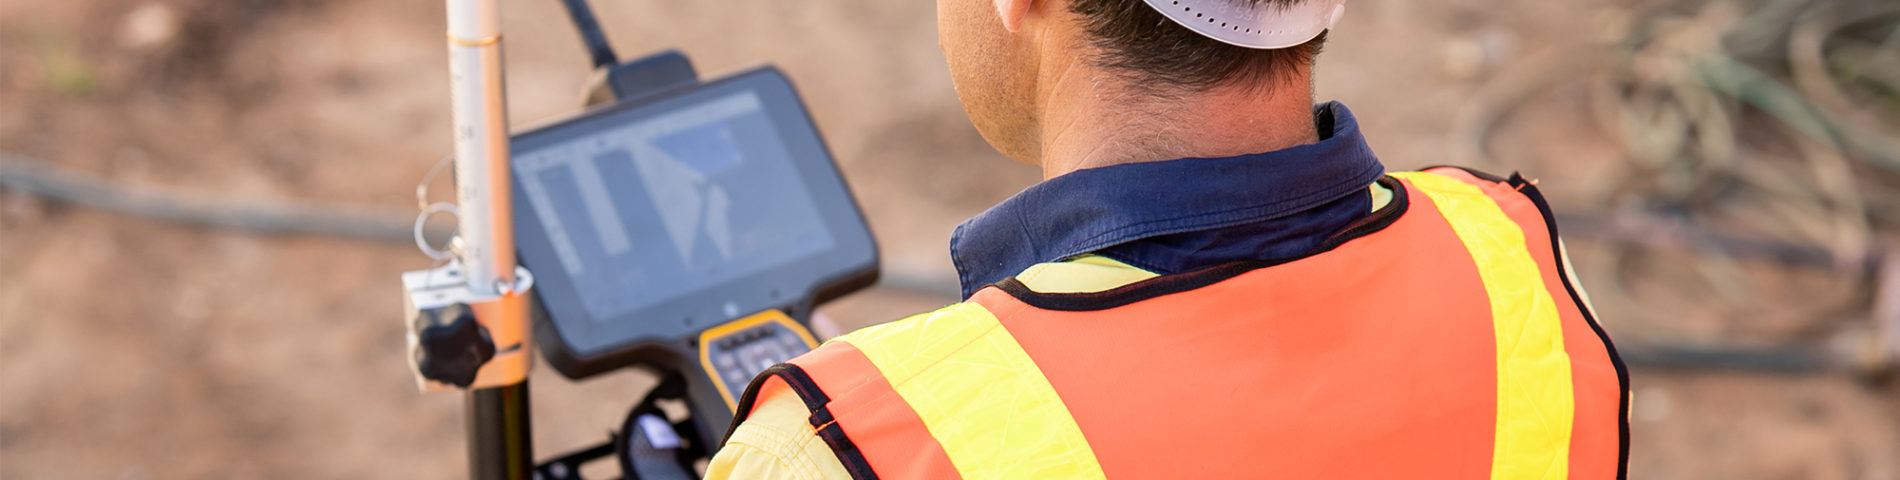 property and infrastructure consultants, albury, wodonga, thermal mapping, surveying and spatial, spiire